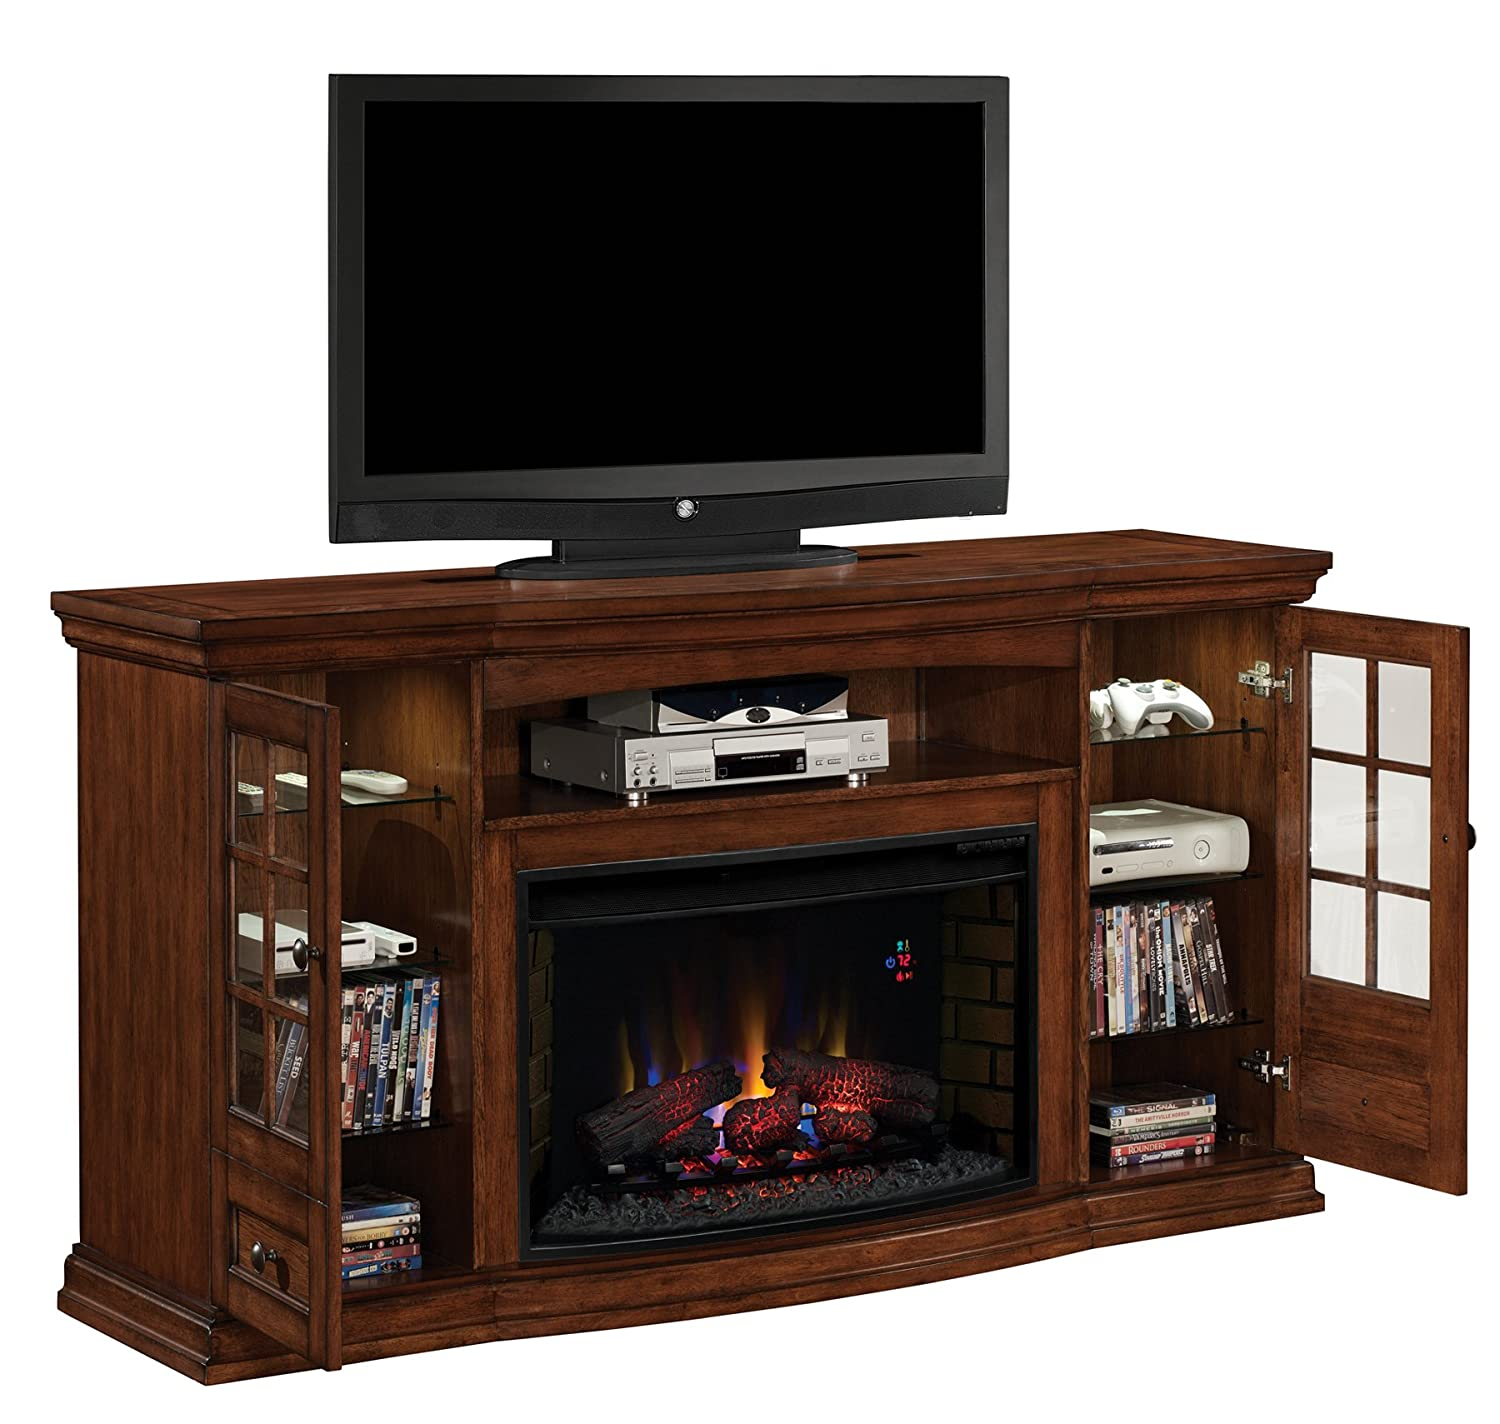 Amazon.com: ClassicFlame 32MM4486-P239 Seagate TV Stand for TVs up ...